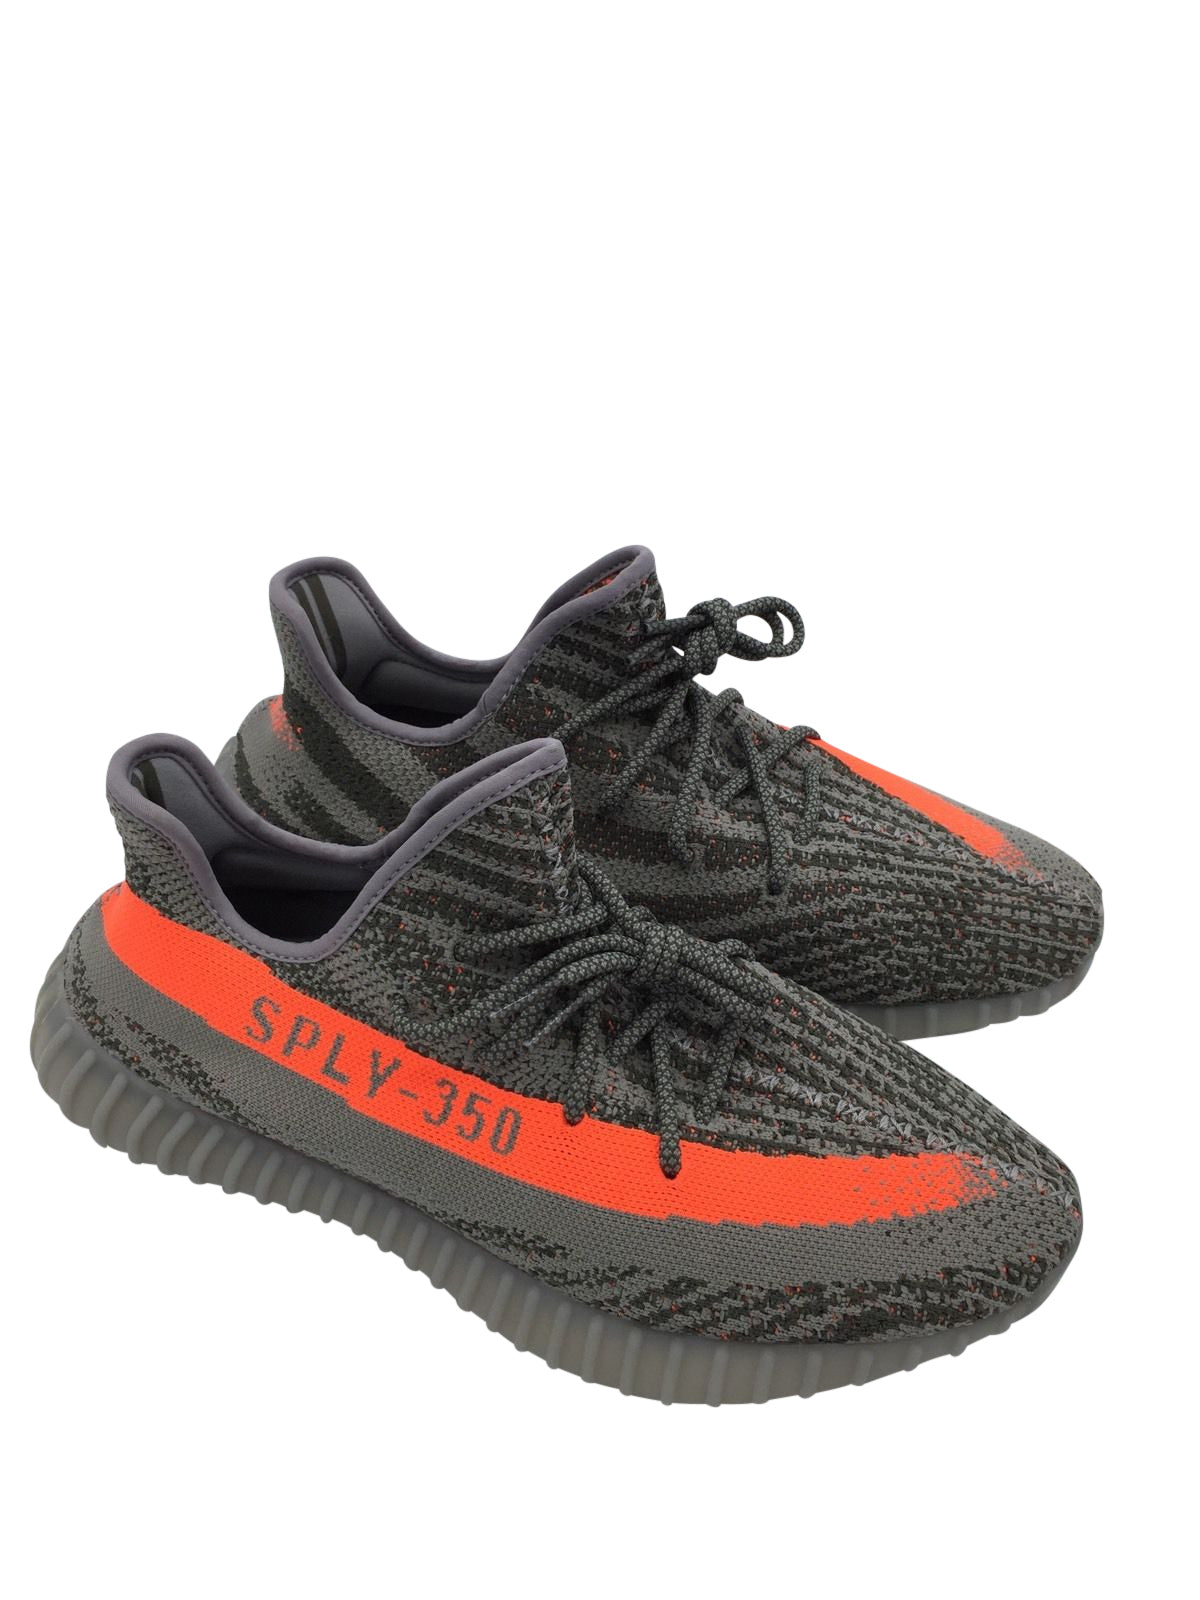 When Is The Yeezy Boost 350 V2 Coming Out Mark Your Calendars